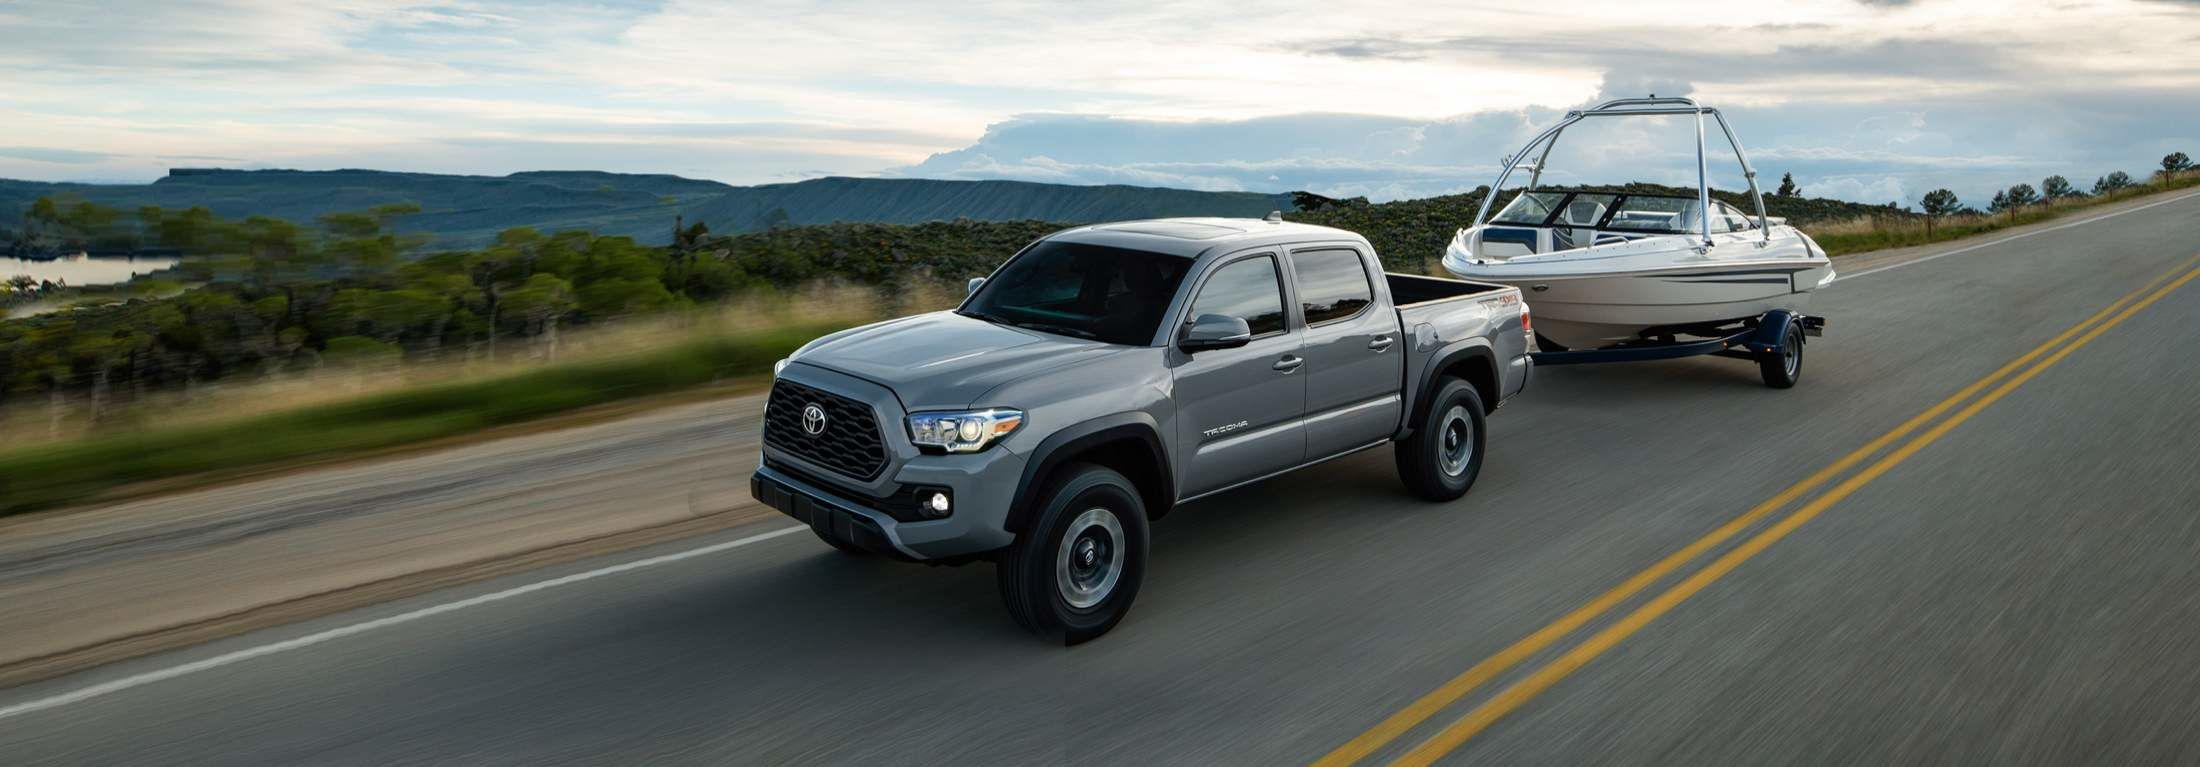 2021 Silver Toyota Tacoma, driving on the road towing a motorboat.